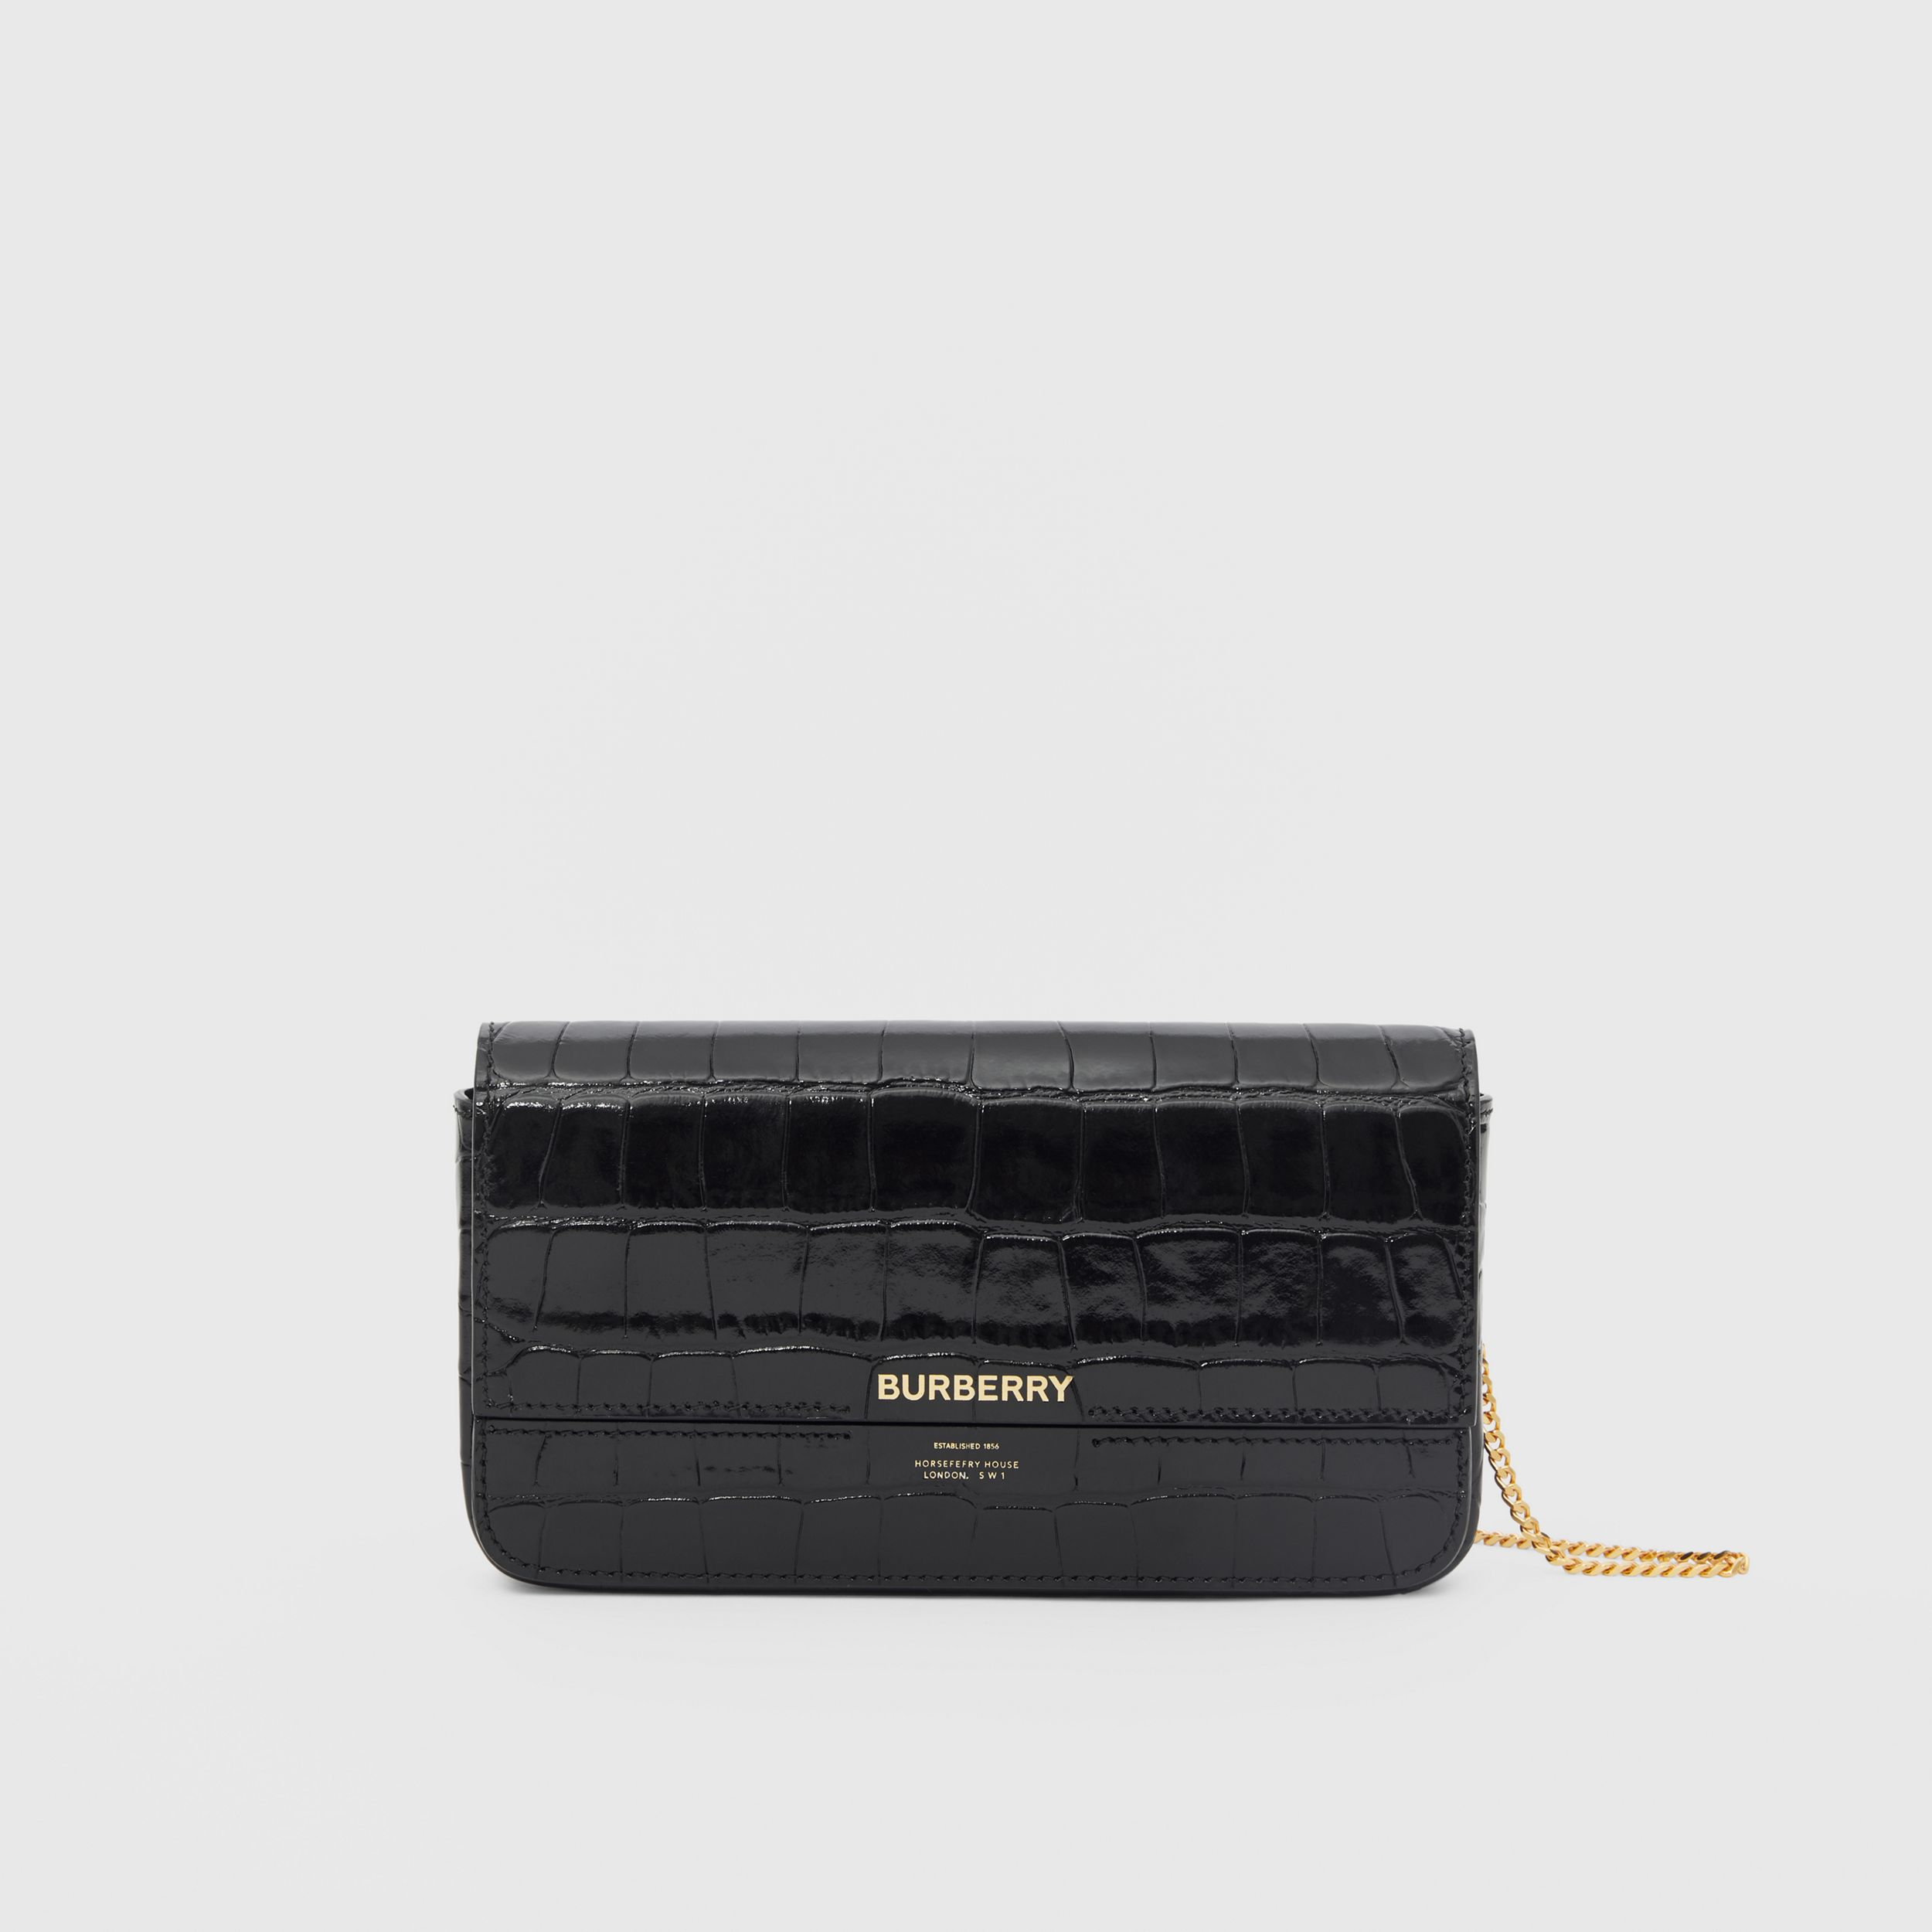 Embossed Leather Wallet with Detachable Chain Strap in Black - Women | Burberry - 1